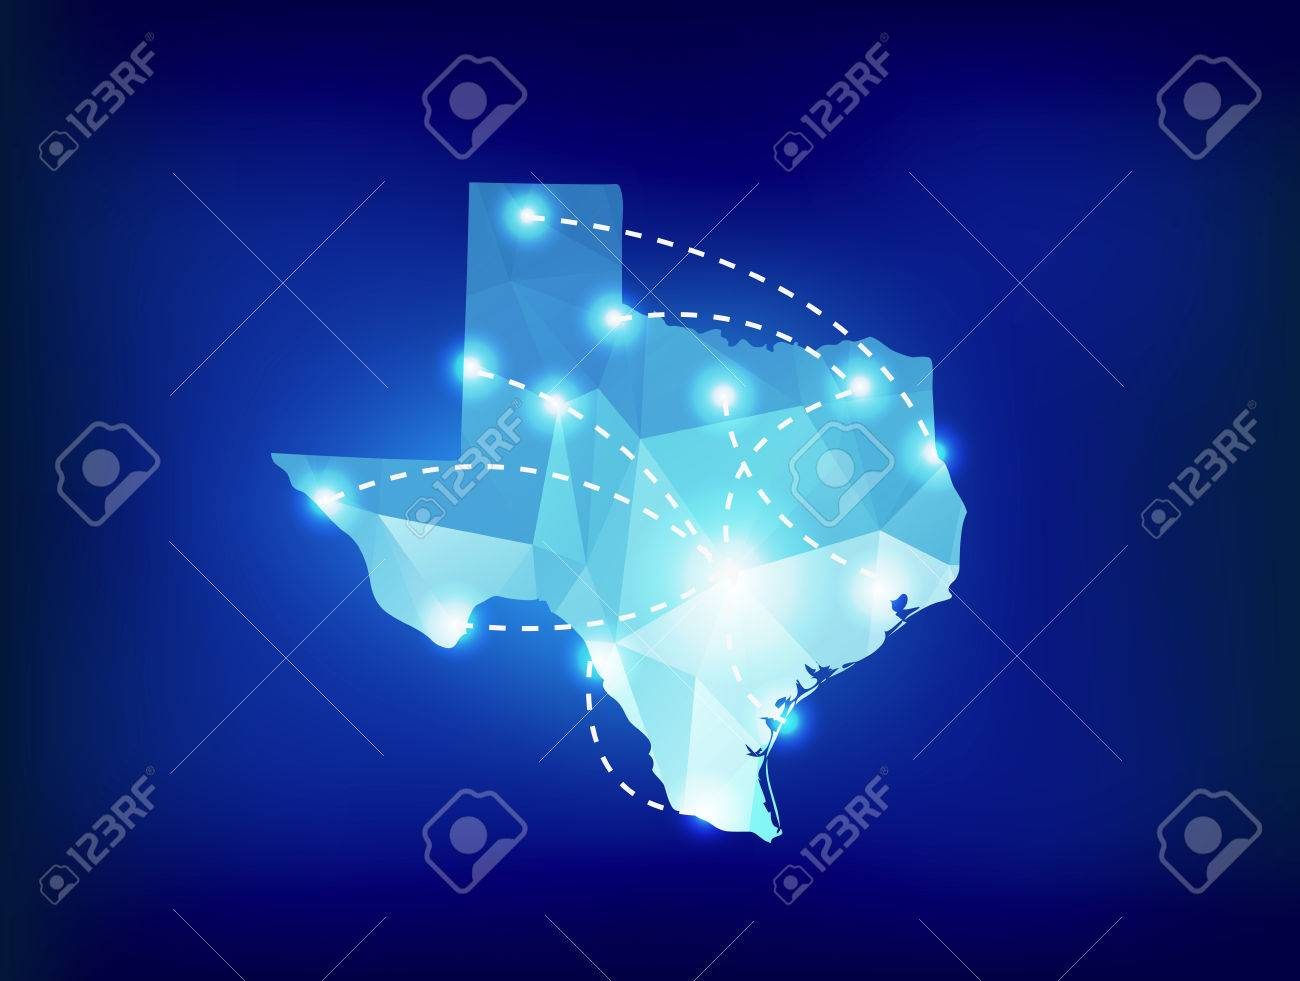 Texas state map polygonal with spotlights places - 43270160